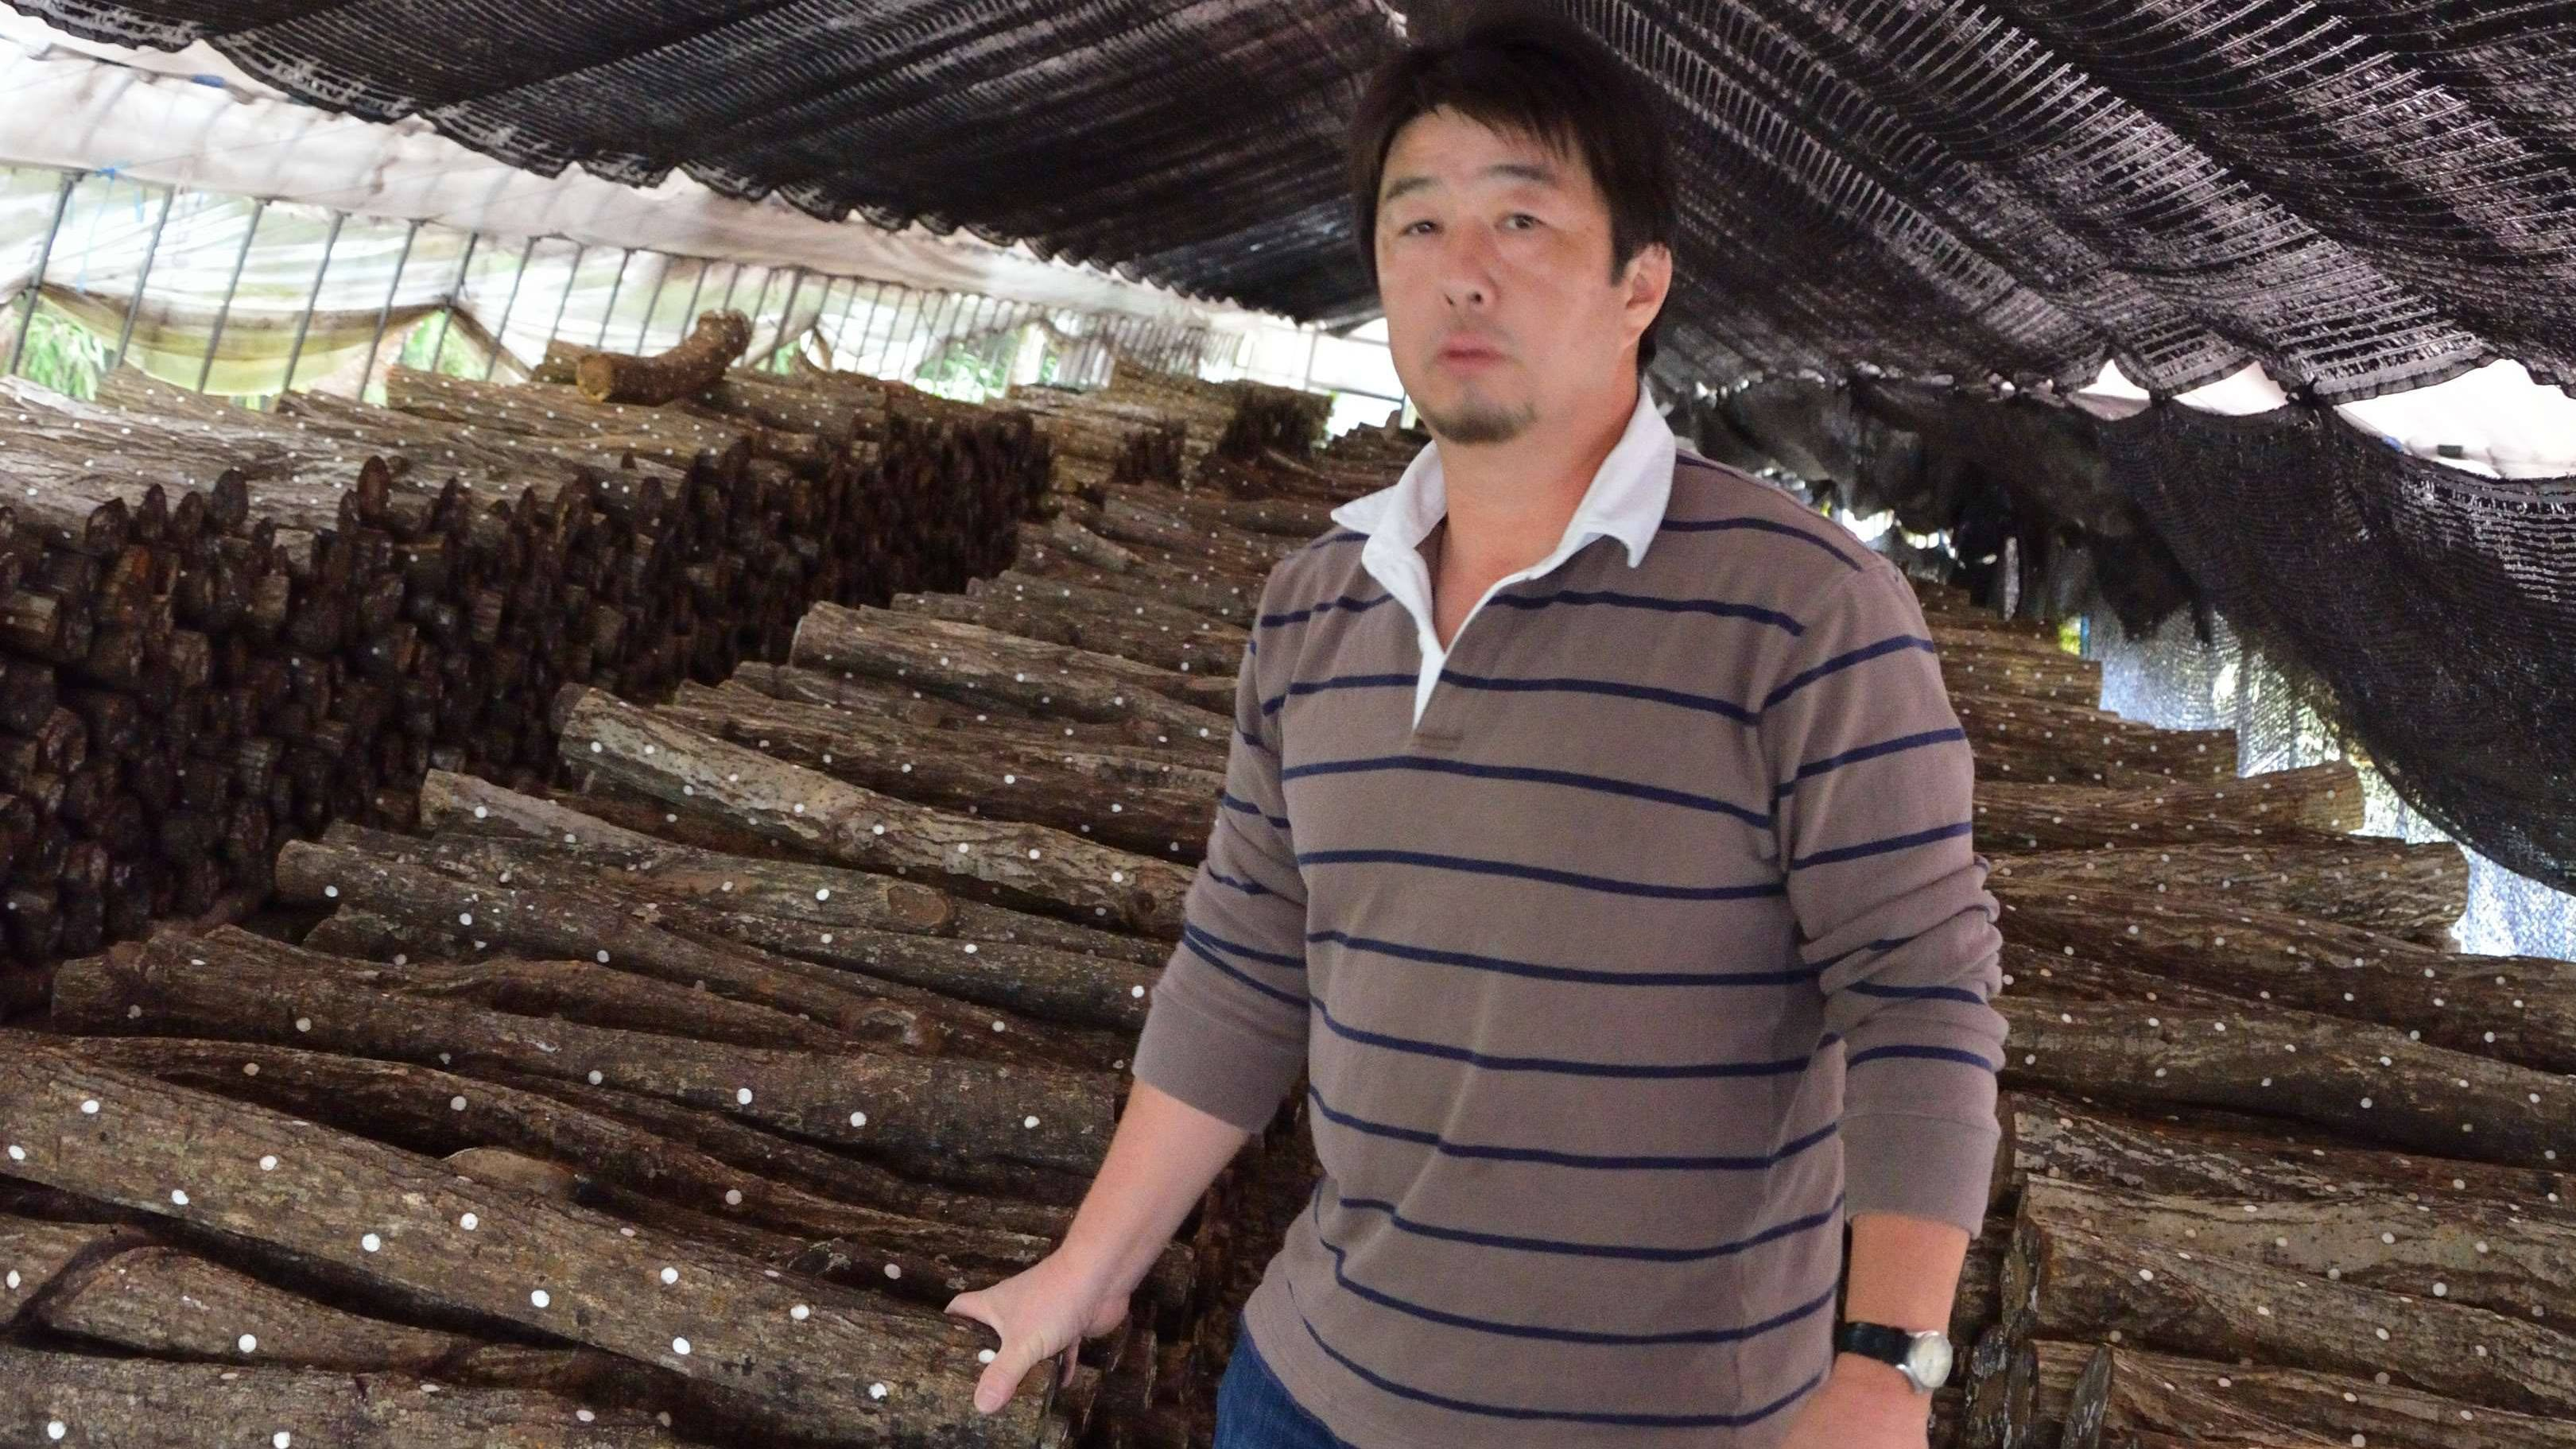 Cut up: Blighted Tochigi Prefecture mushroom farmer Yuji Hoshino with some of the 30,000 logs studded with pegs inoculated with shiitake spores that he must now dispose of because they have been exposed to radioactive rain. | WINIFRED BIRD PHOTO